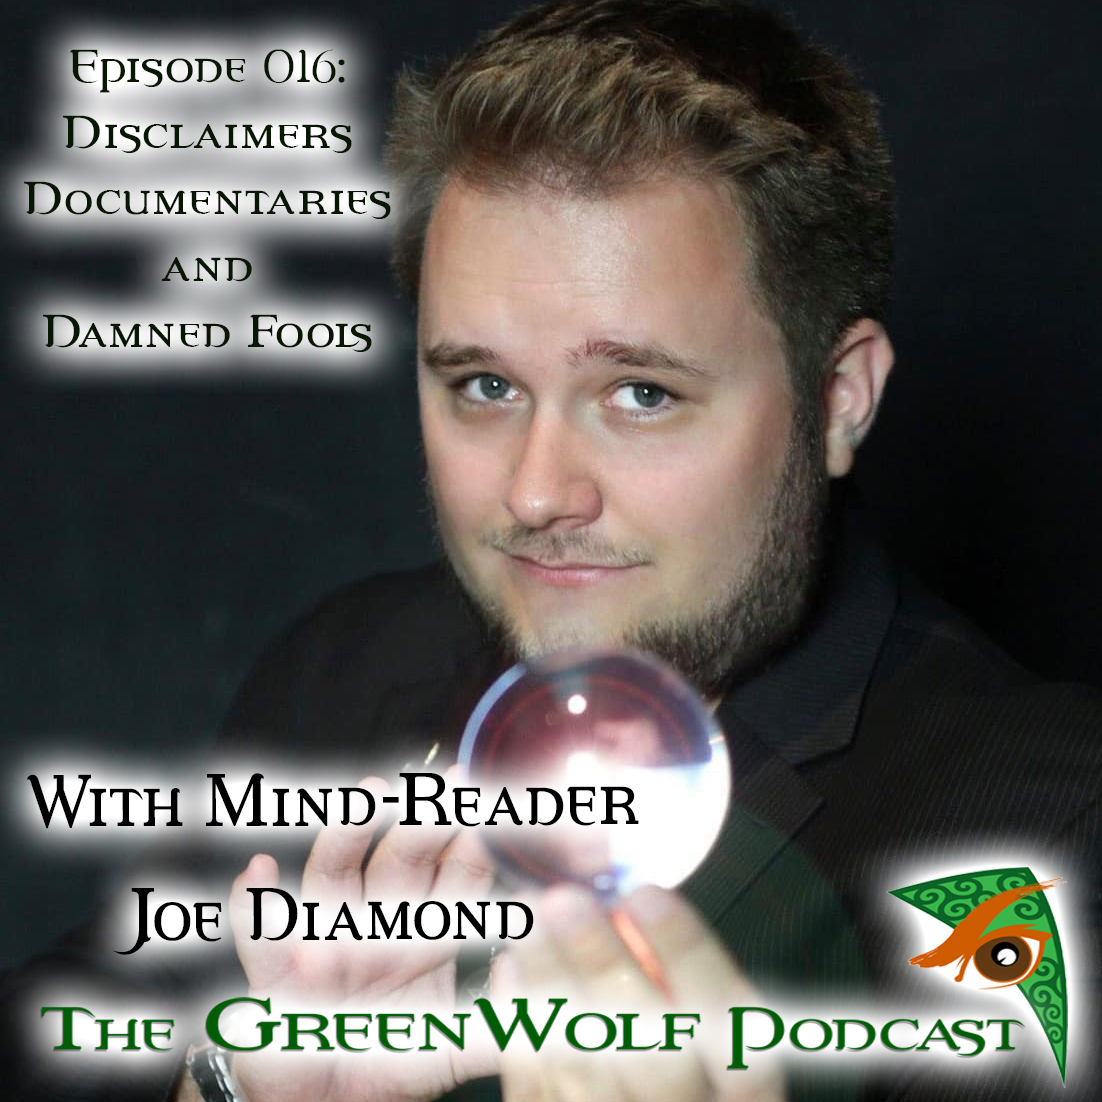 The GreenWolf Podcast - Ep 016- Disclaimers, Documentaries, and Damned Fools with Mind-Reader Joe Diamond